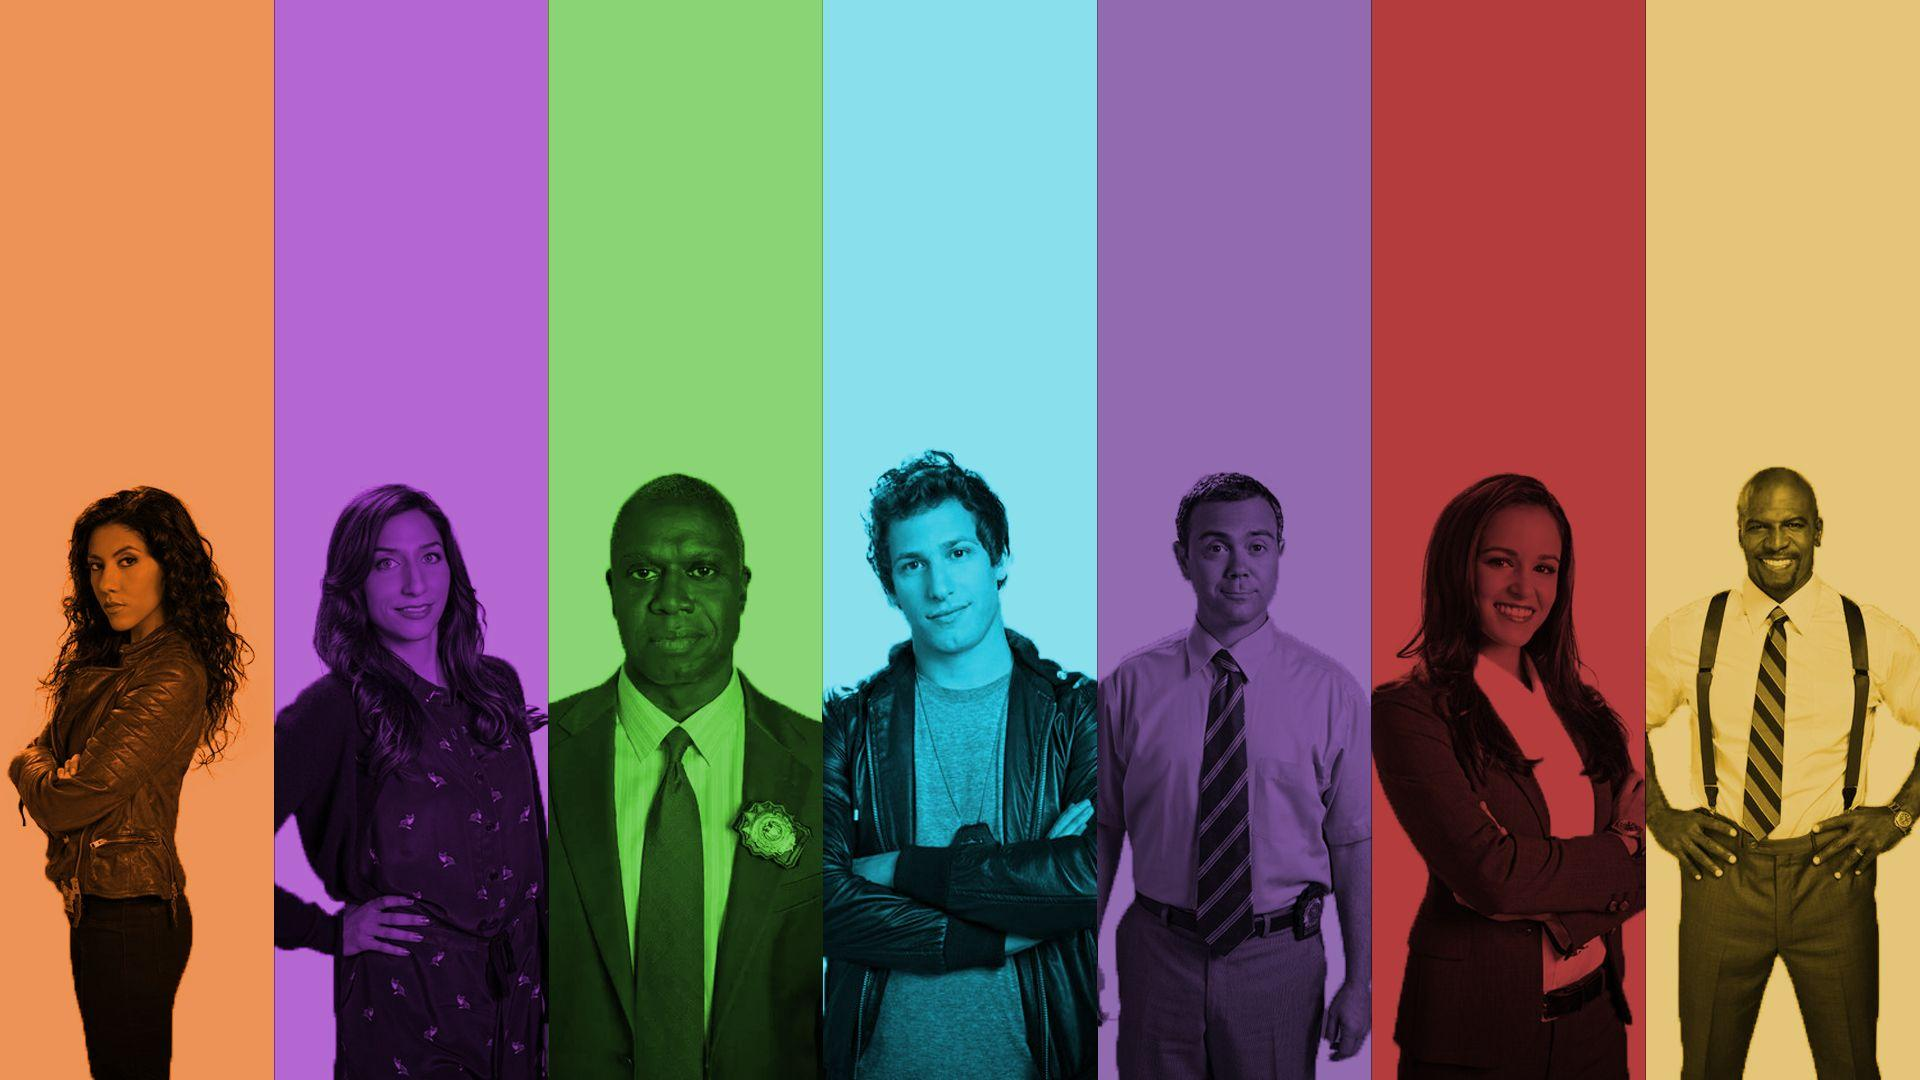 Made a Brooklyn Nine Nine wallpapers dedicated to my favourite show